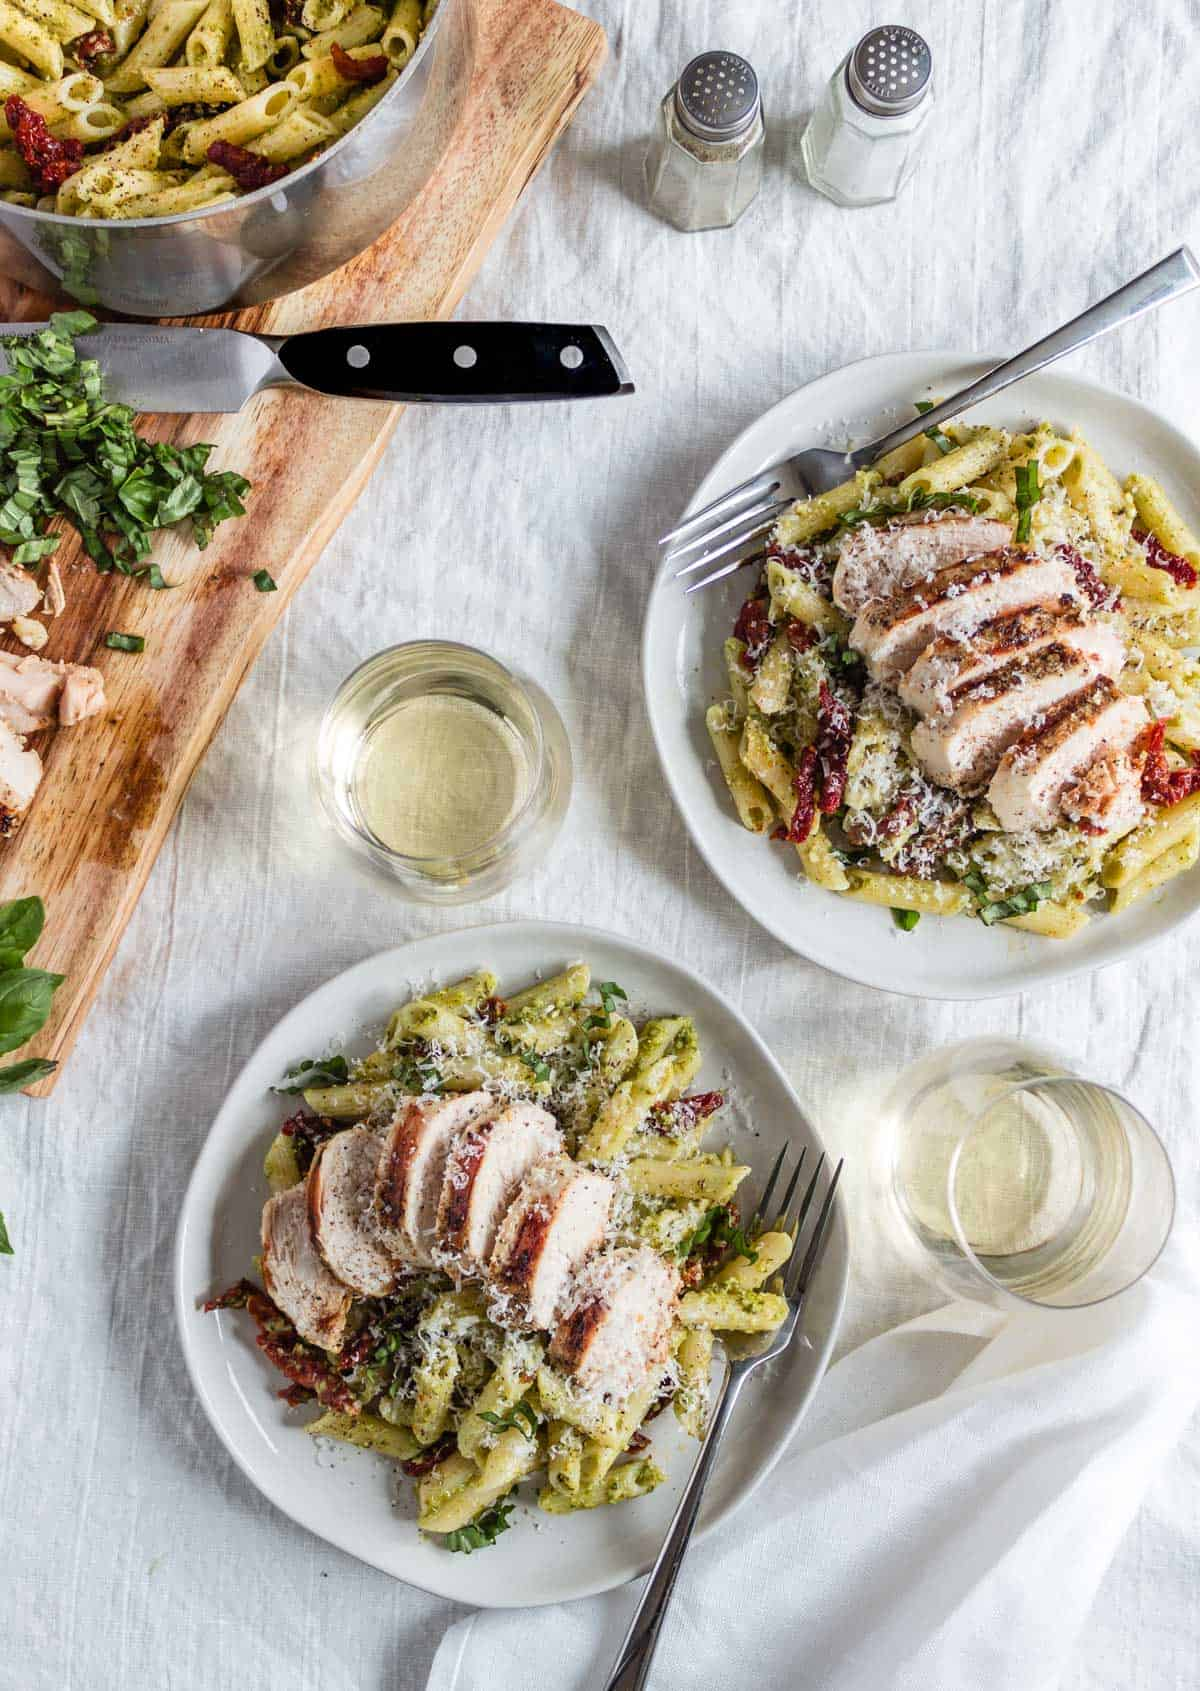 Two plates of creamy pesto pasta topped with grilled chicken, sun-dried tomatoes, and grated parmesan. Two glasses of white win sit nearby as well as a pot of pasta seconds and a serving board with sliced grilled chicken.